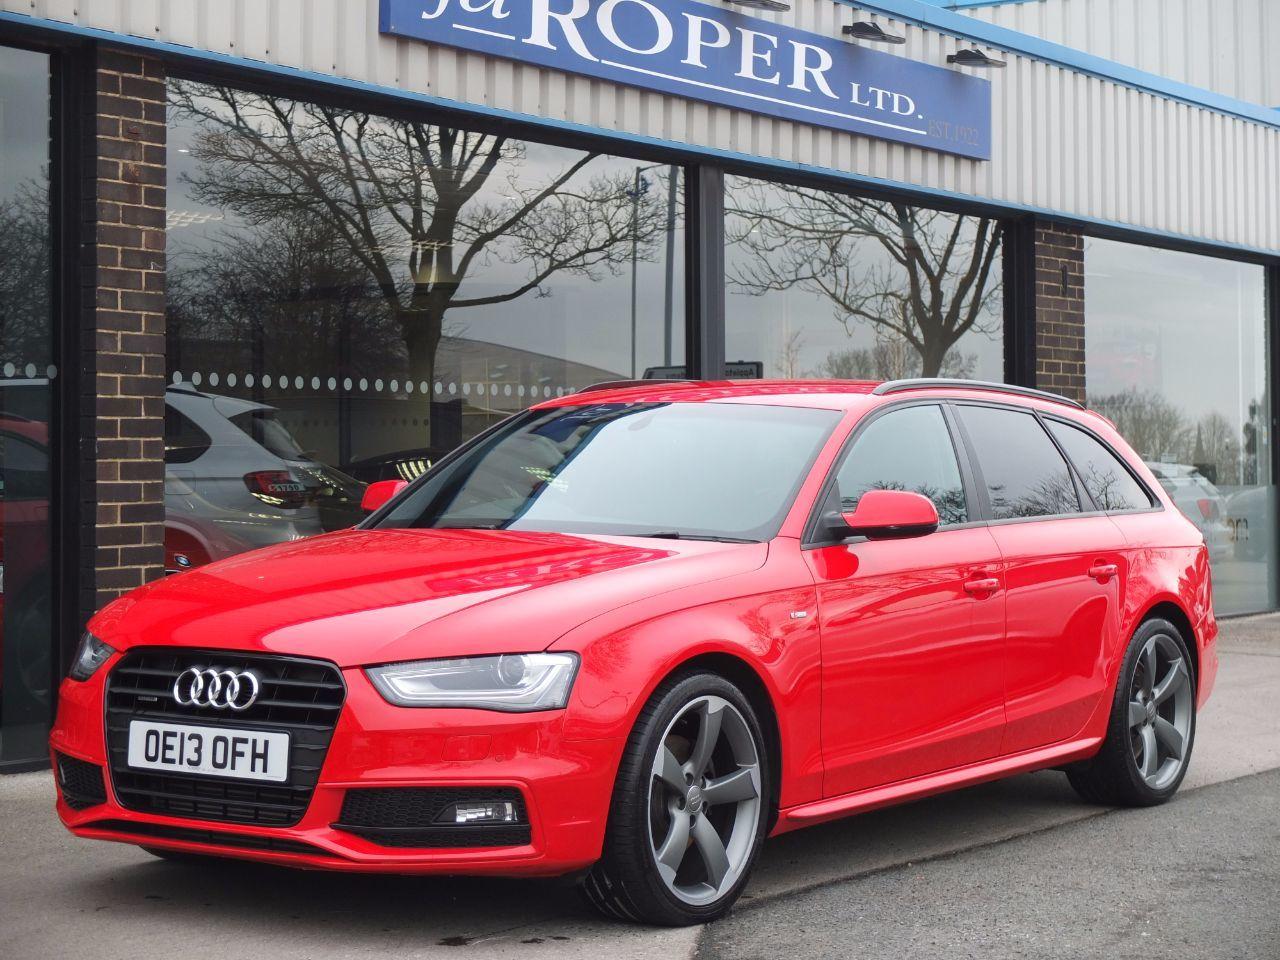 Audi A4 Avant 2.0 TDI 177ps quattro Black Edition Estate Diesel Misano Red Pearl